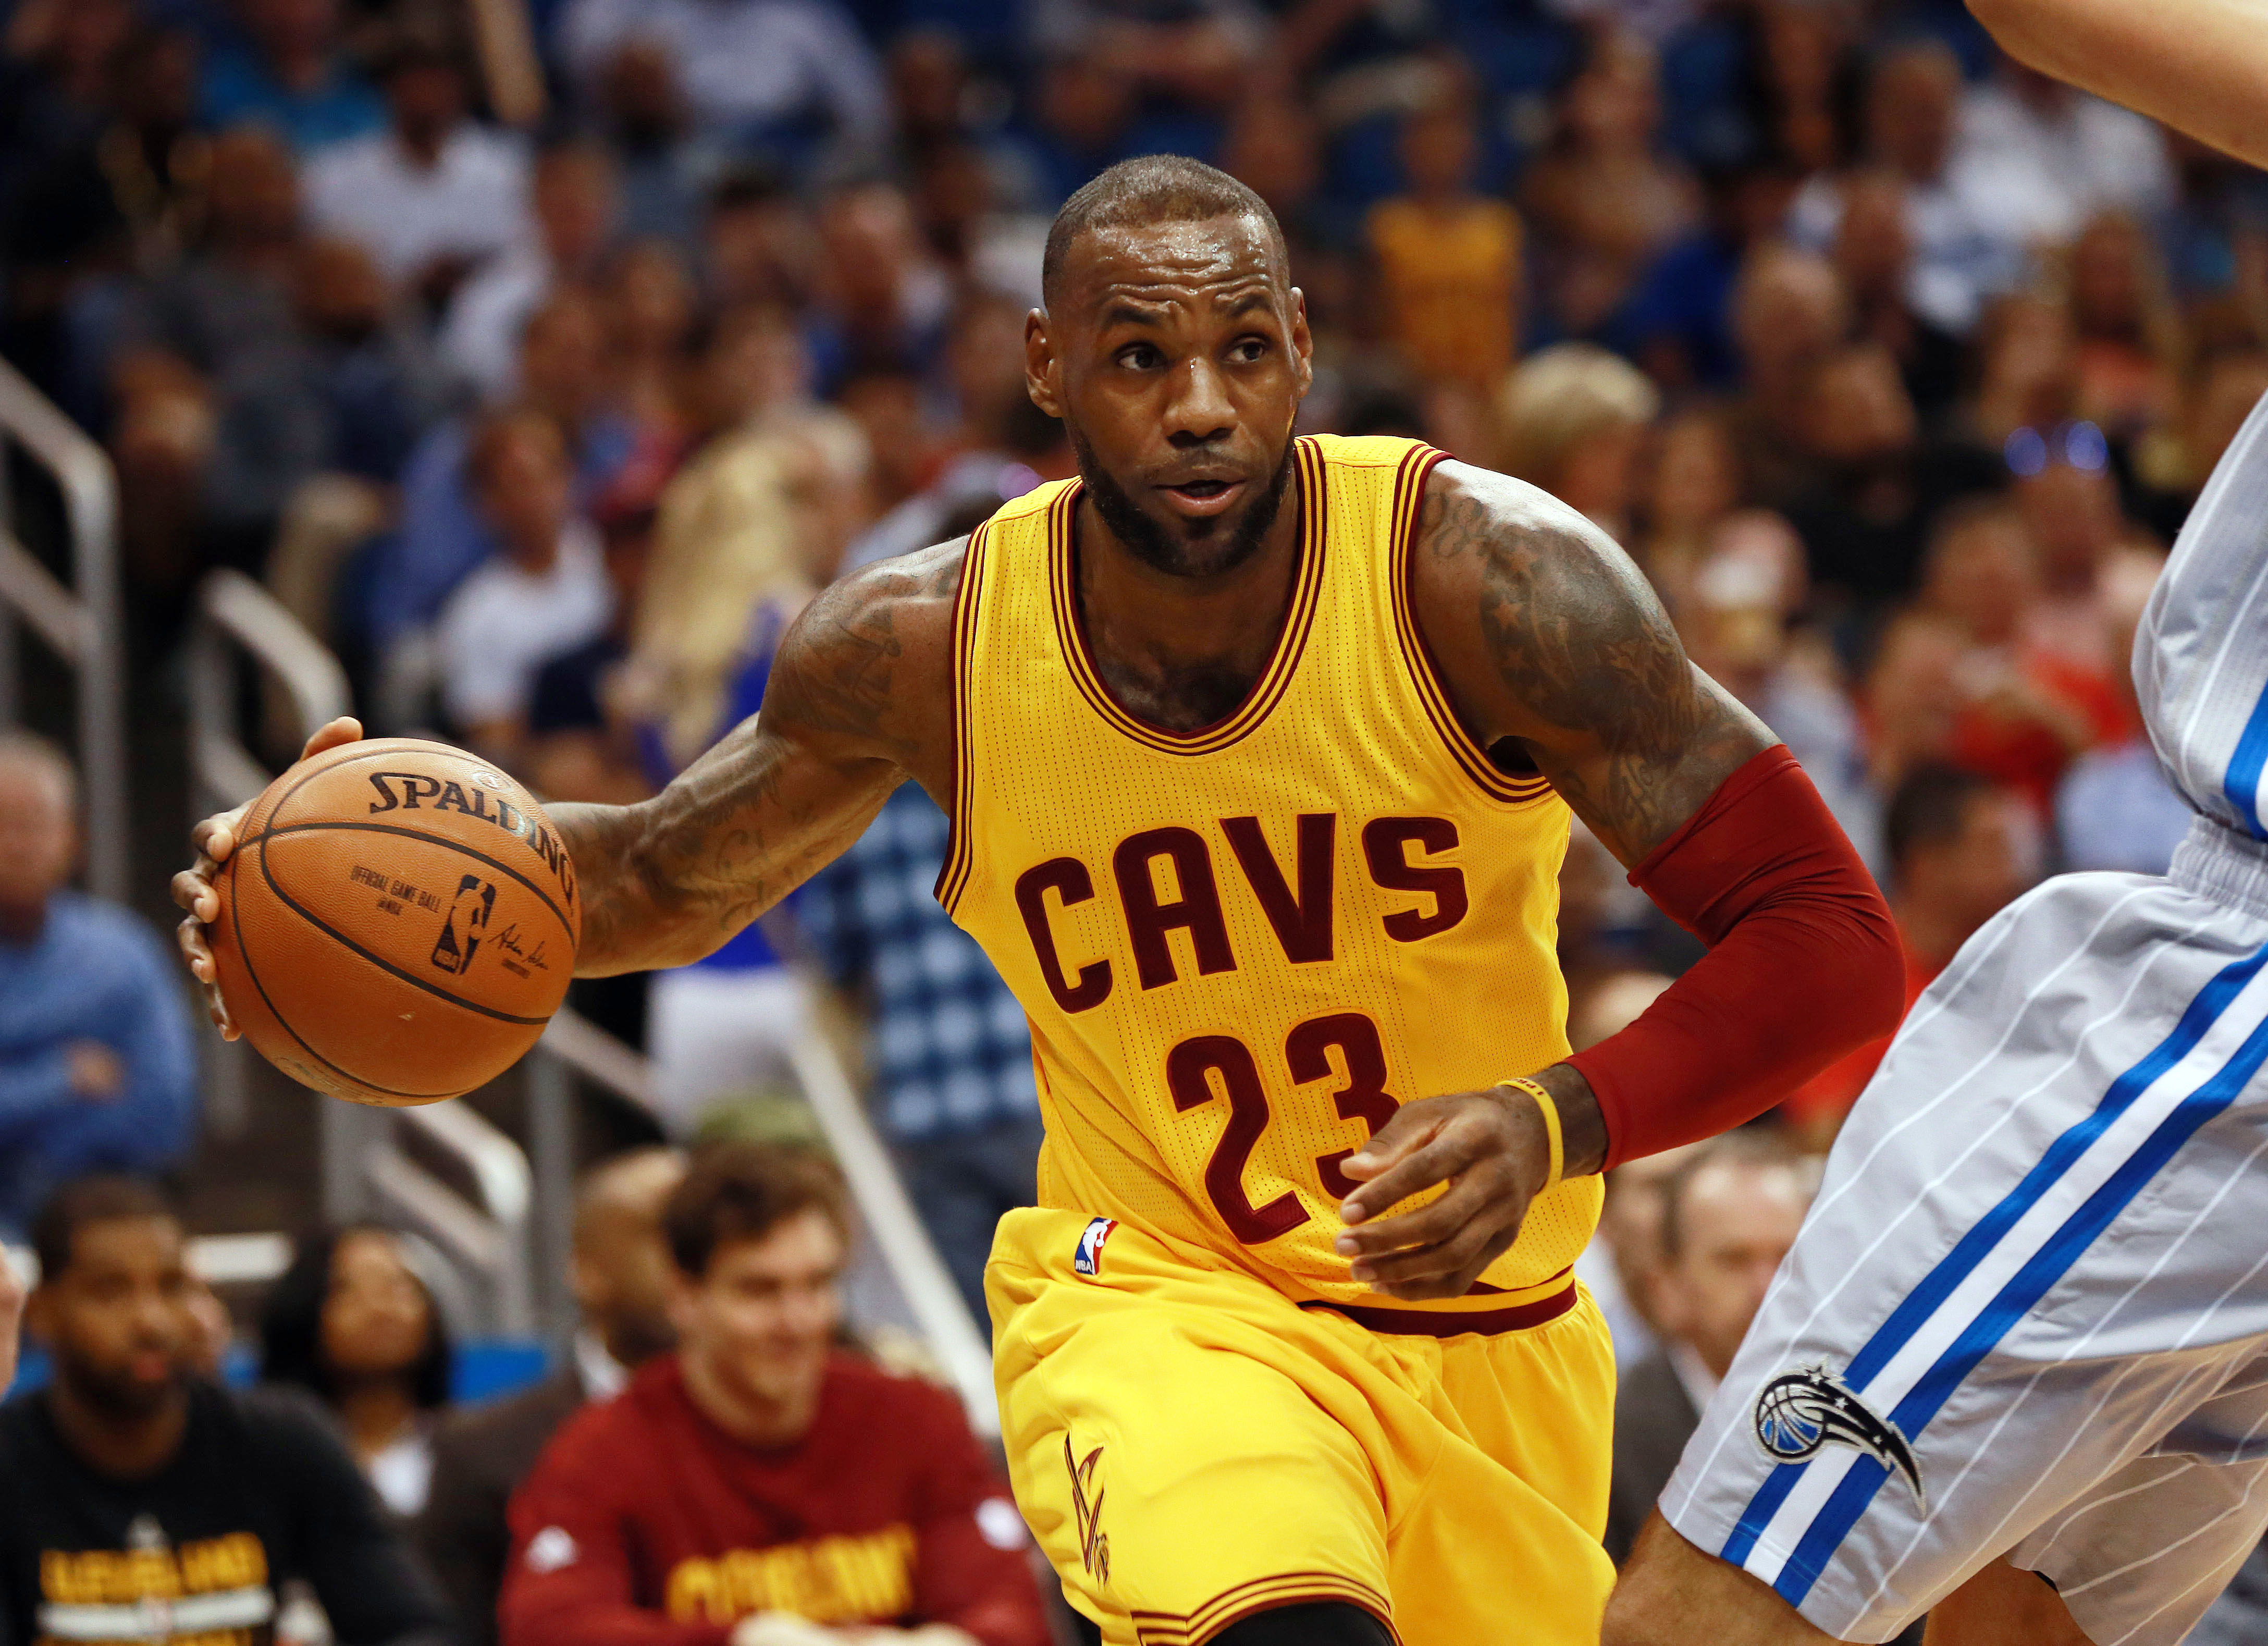 LeBron James Unfollows The Cleveland Cavaliers Twitter And Instagram Accounts, Dwade Reacts